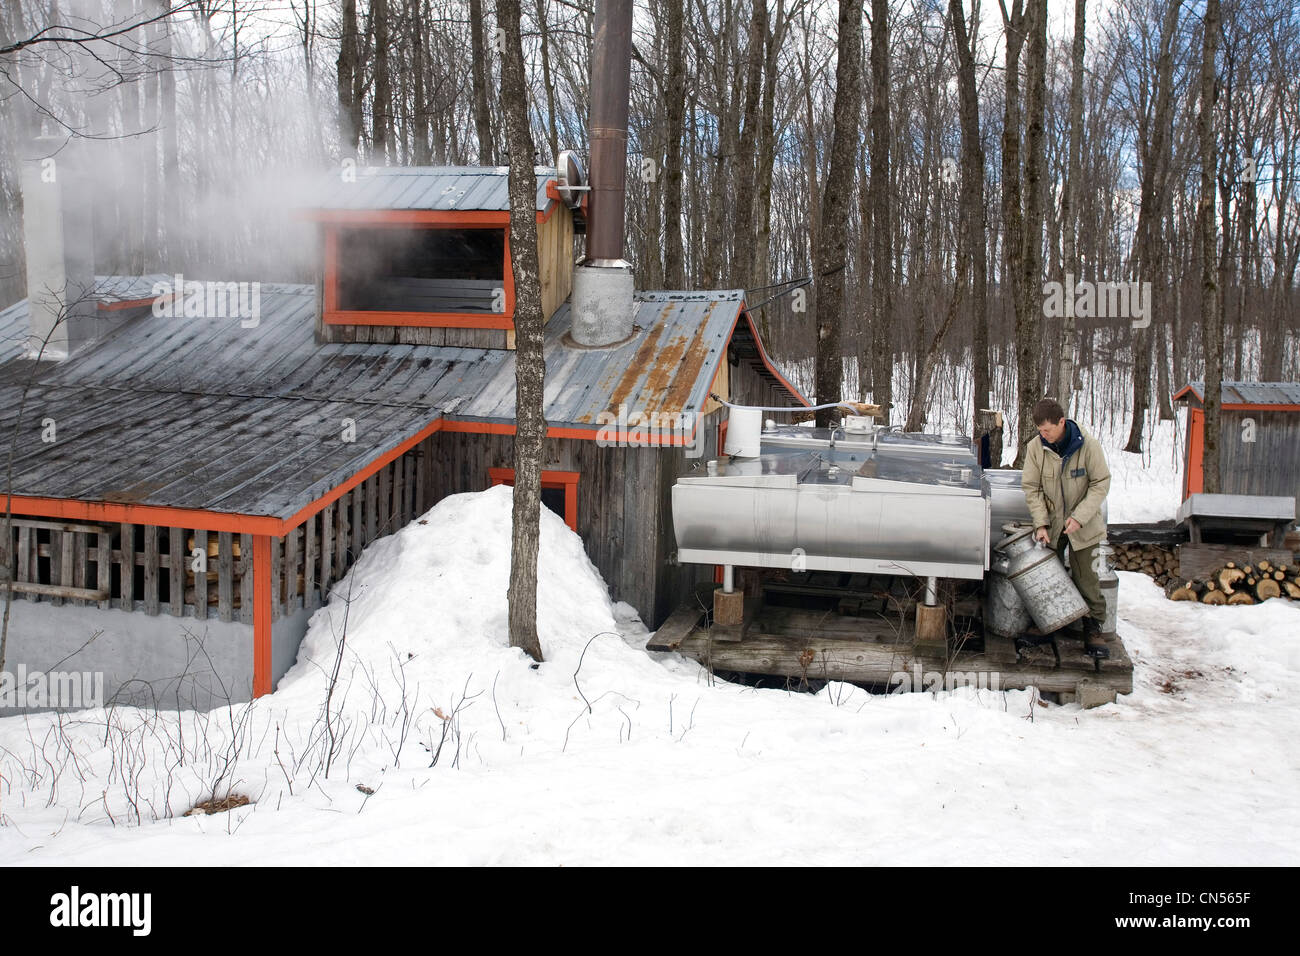 Man pouring maple water in a tank to make maple syrup sugar cabin man pouring maple water in a tank to make maple syrup sugar cabin st mathieu du lac la mauricie county quebec ccuart Image collections